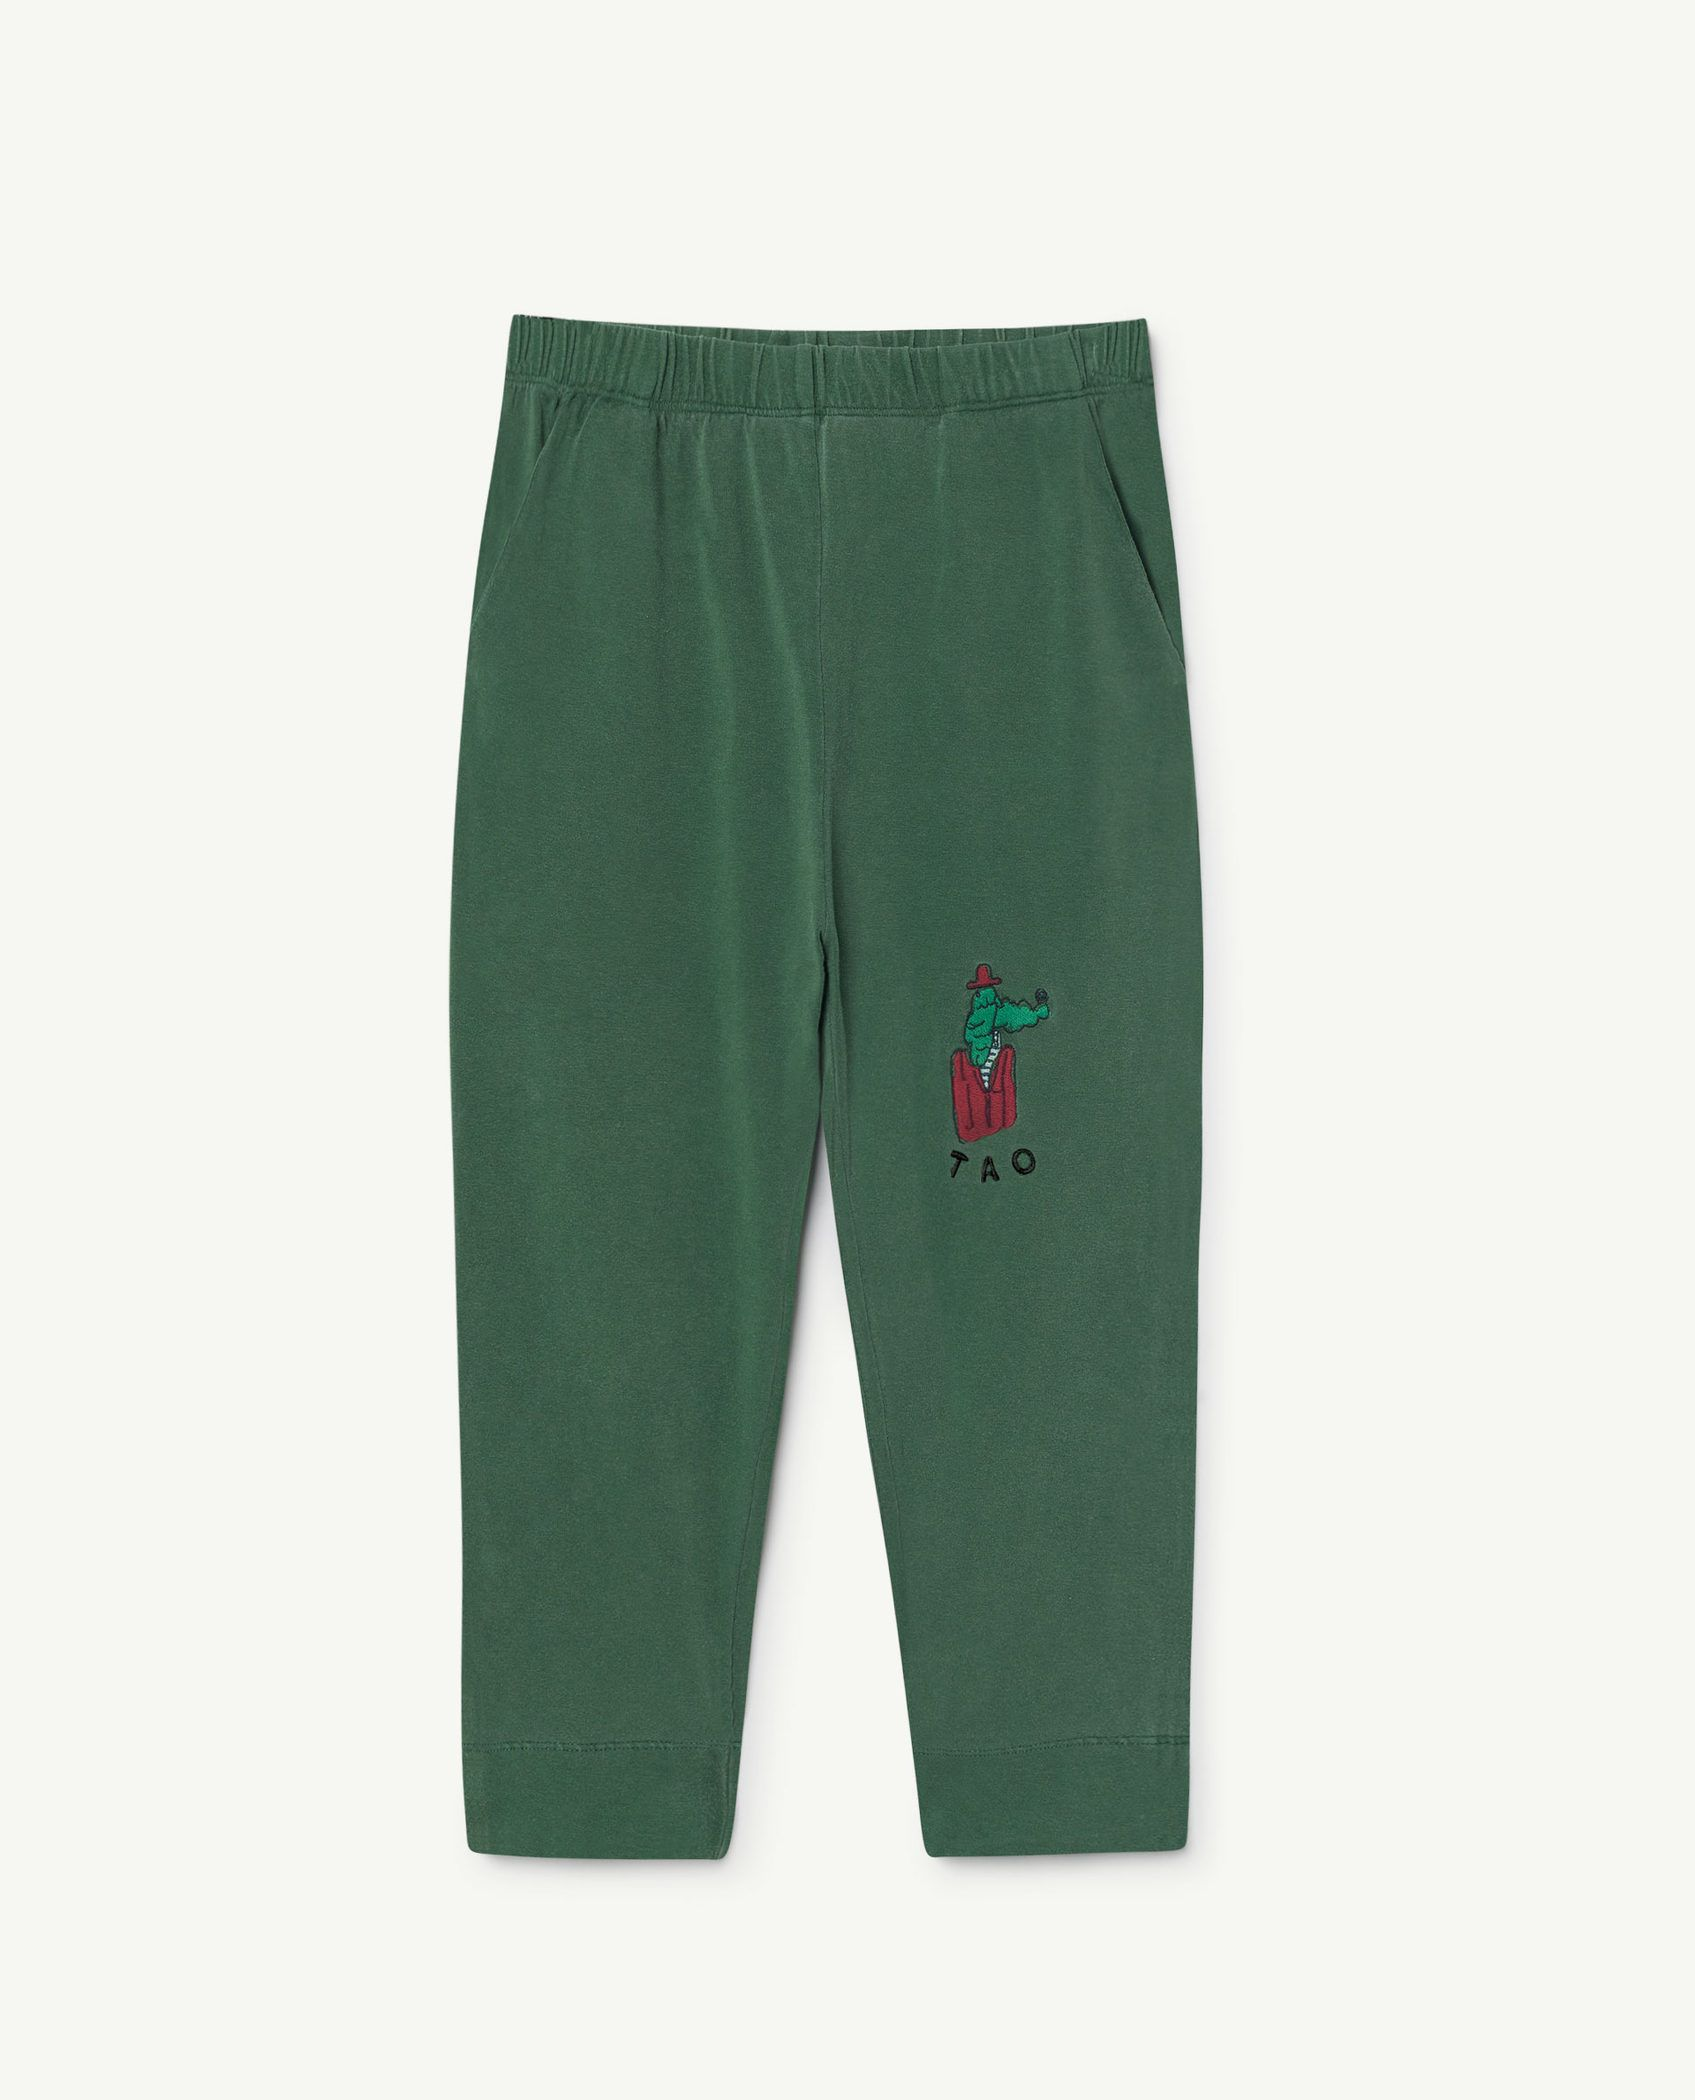 Green Rhino Pants img-1